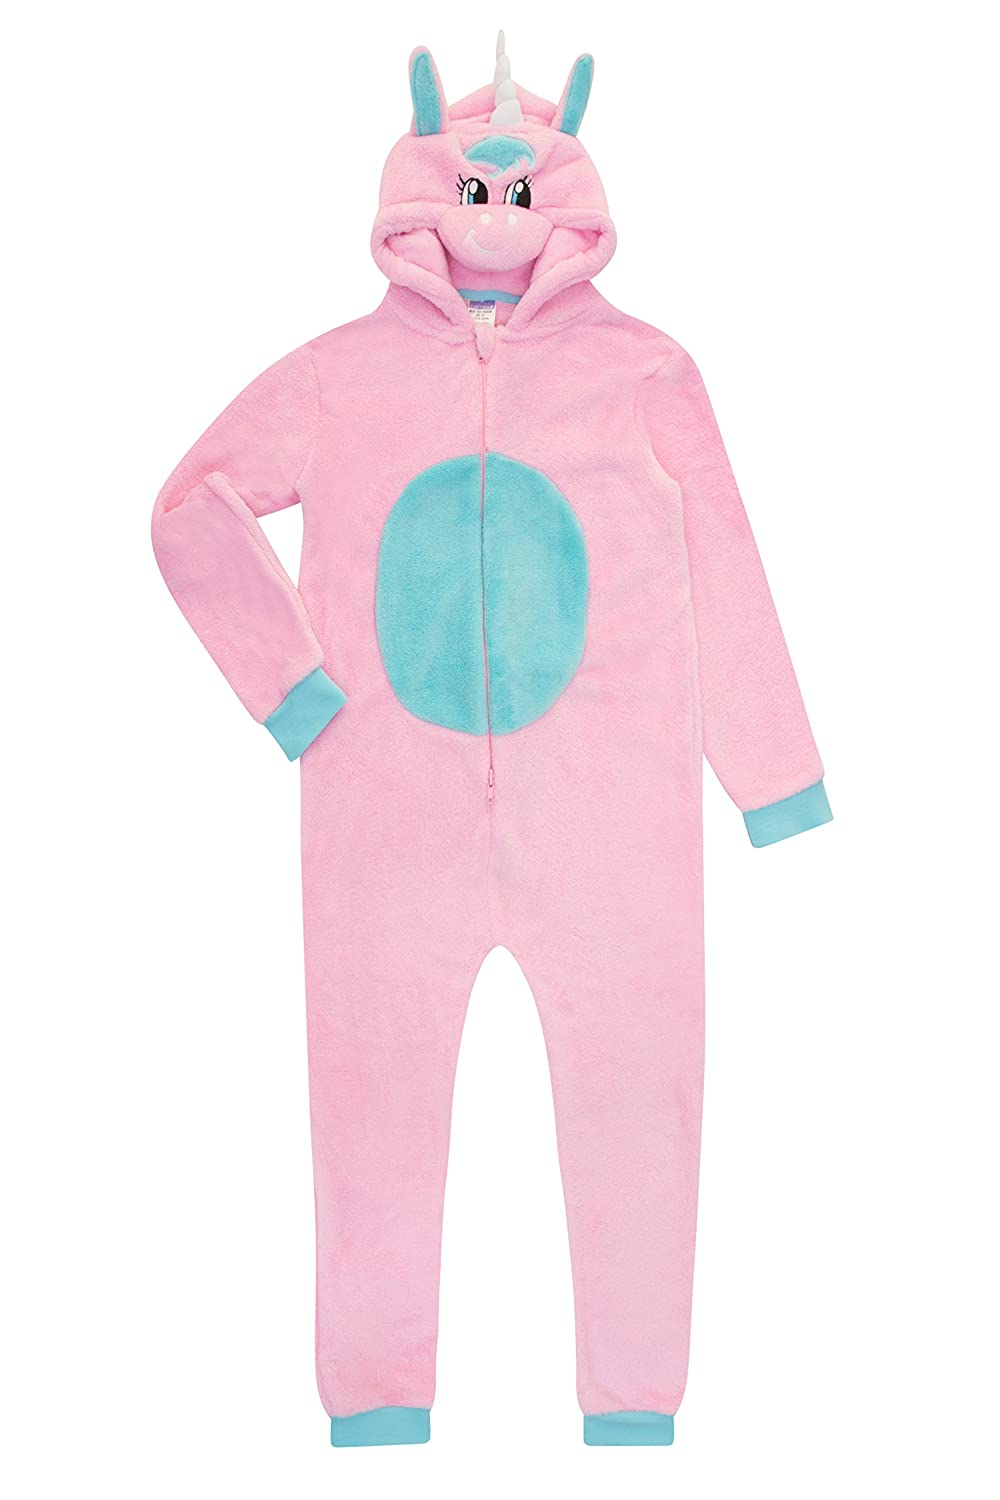 Super Cool Unicorn All in One Romper Sleepsuit 7 to 13 Years Pink